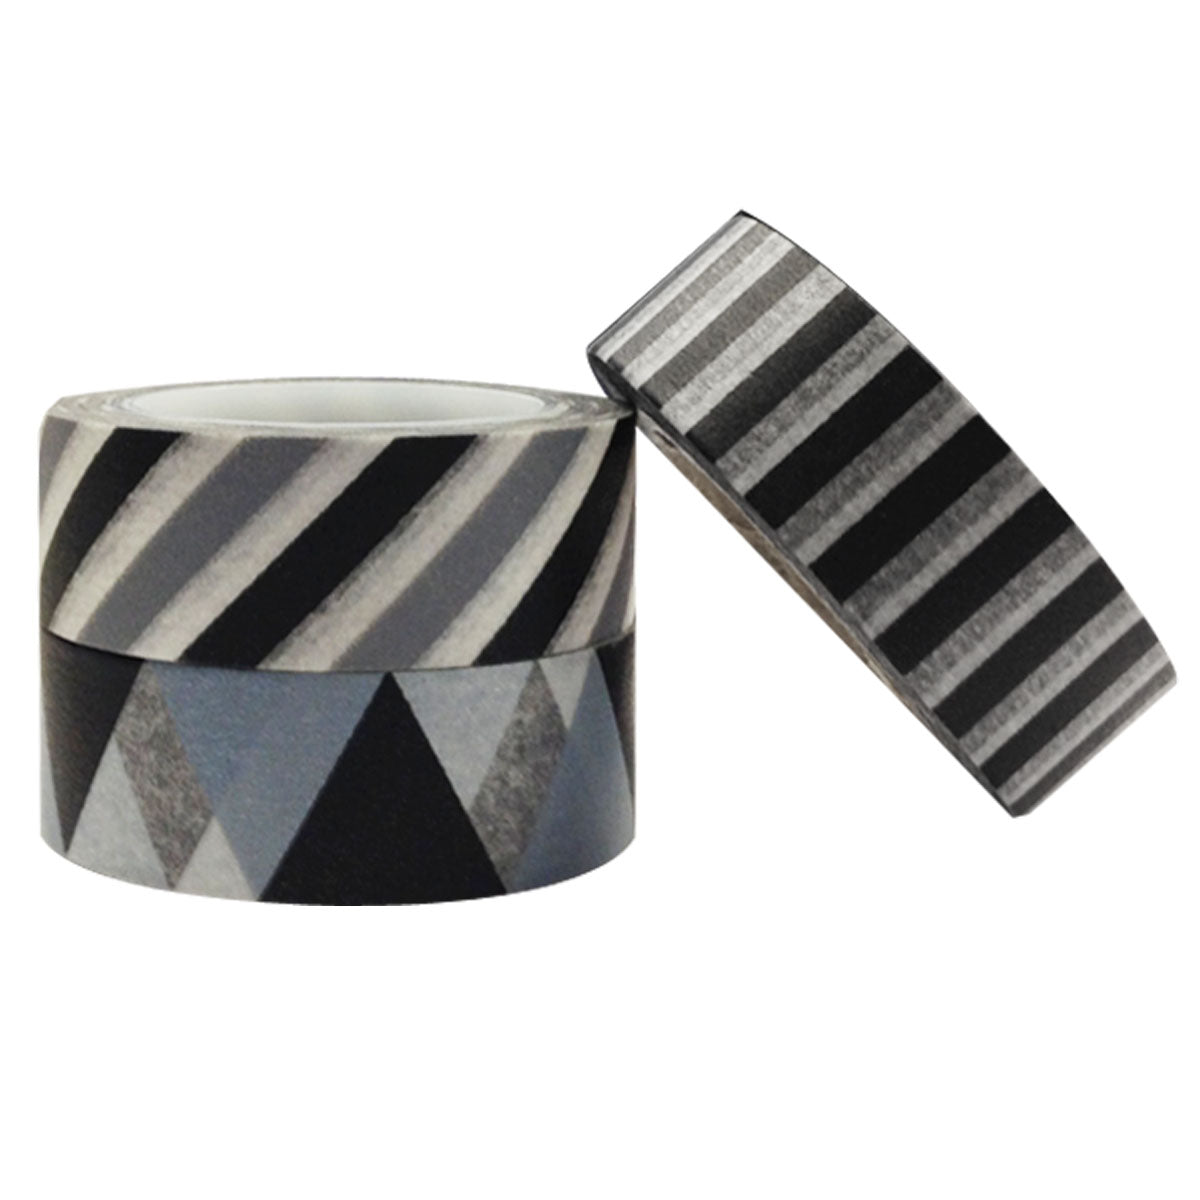 Wrapables Grey & Black Washi Masking Tape (set of 3)